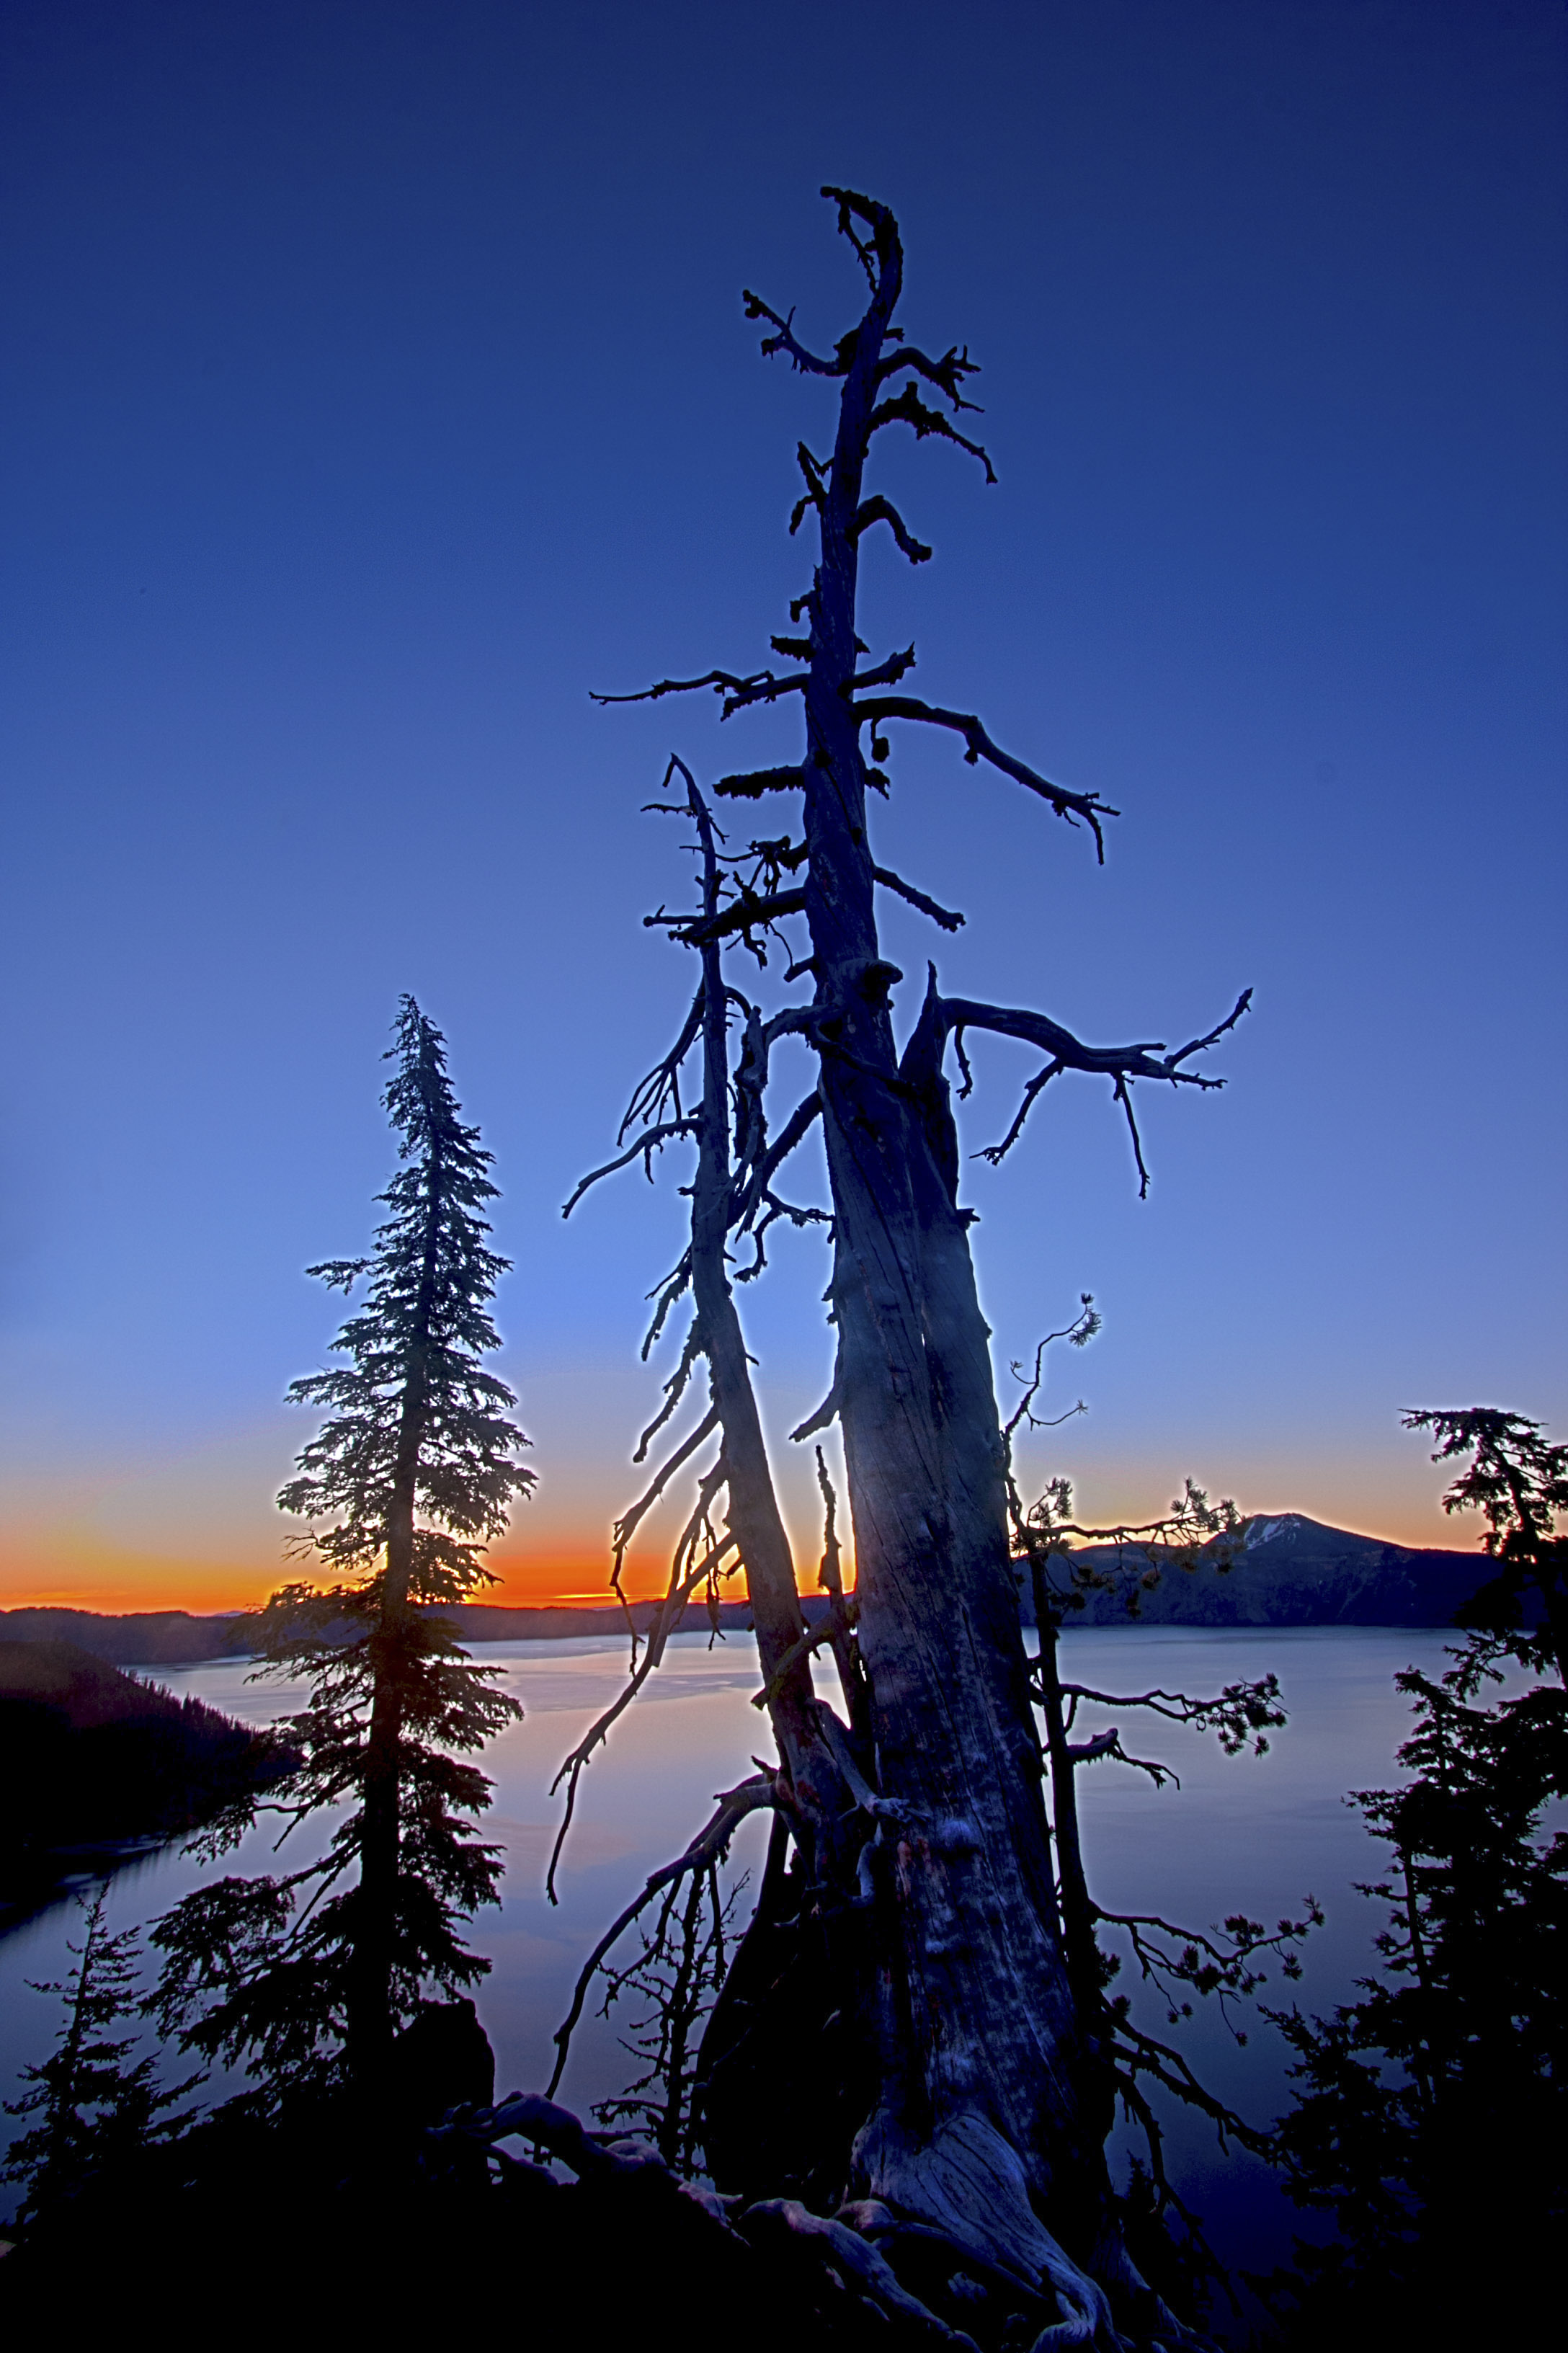 craterLakeSunrise201302.JPG